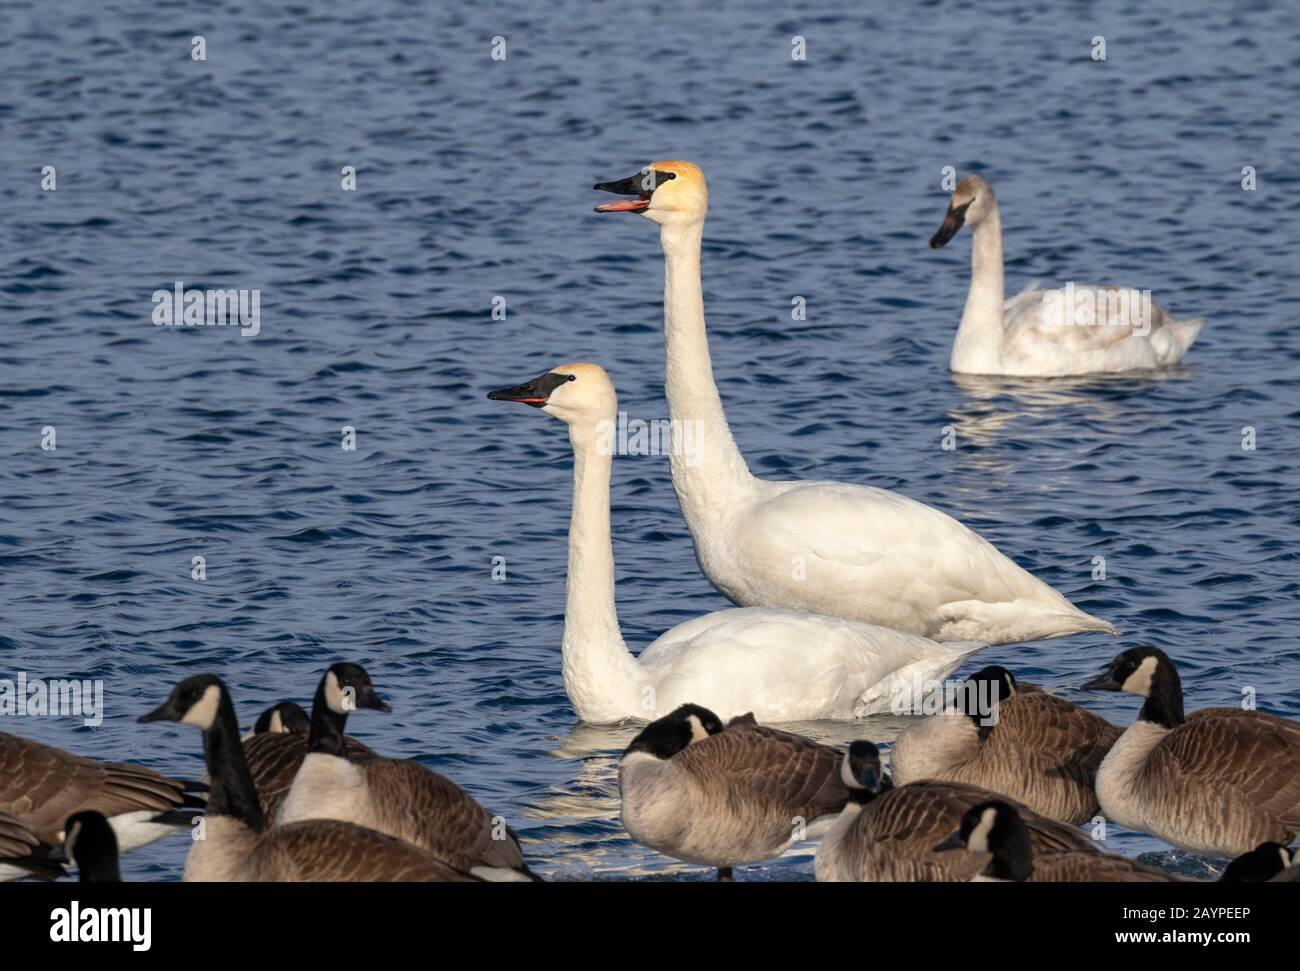 Trumpeter swans (Cygnus buccinator) and canada geese (Branta canadensis) in a lake, Iowa, USA. Stock Photo